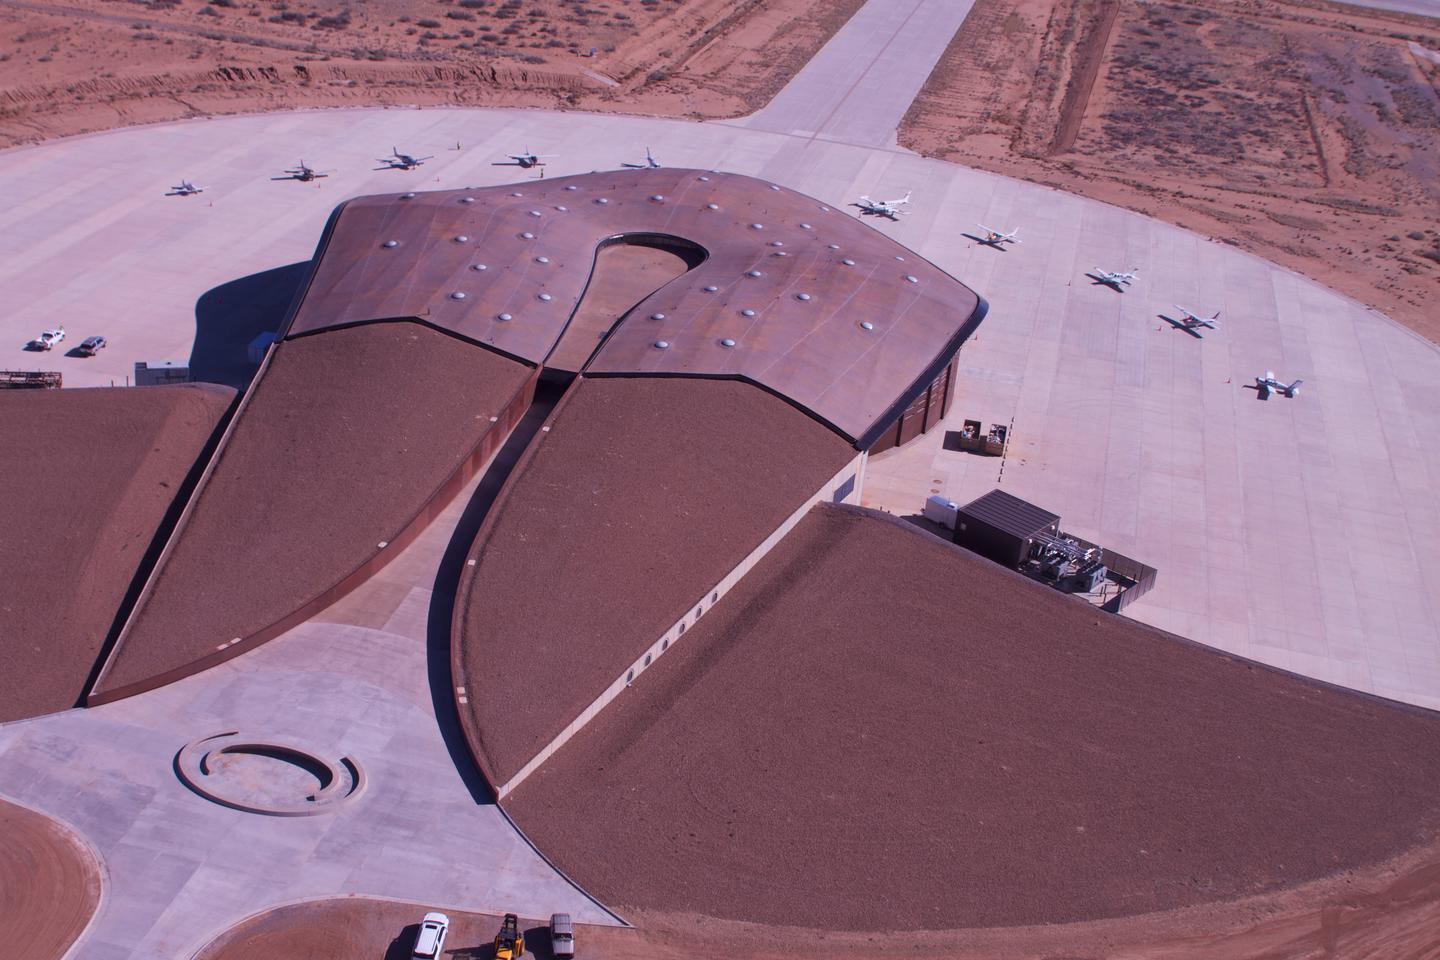 Spaceport America from above (Photo: Spaceport America)